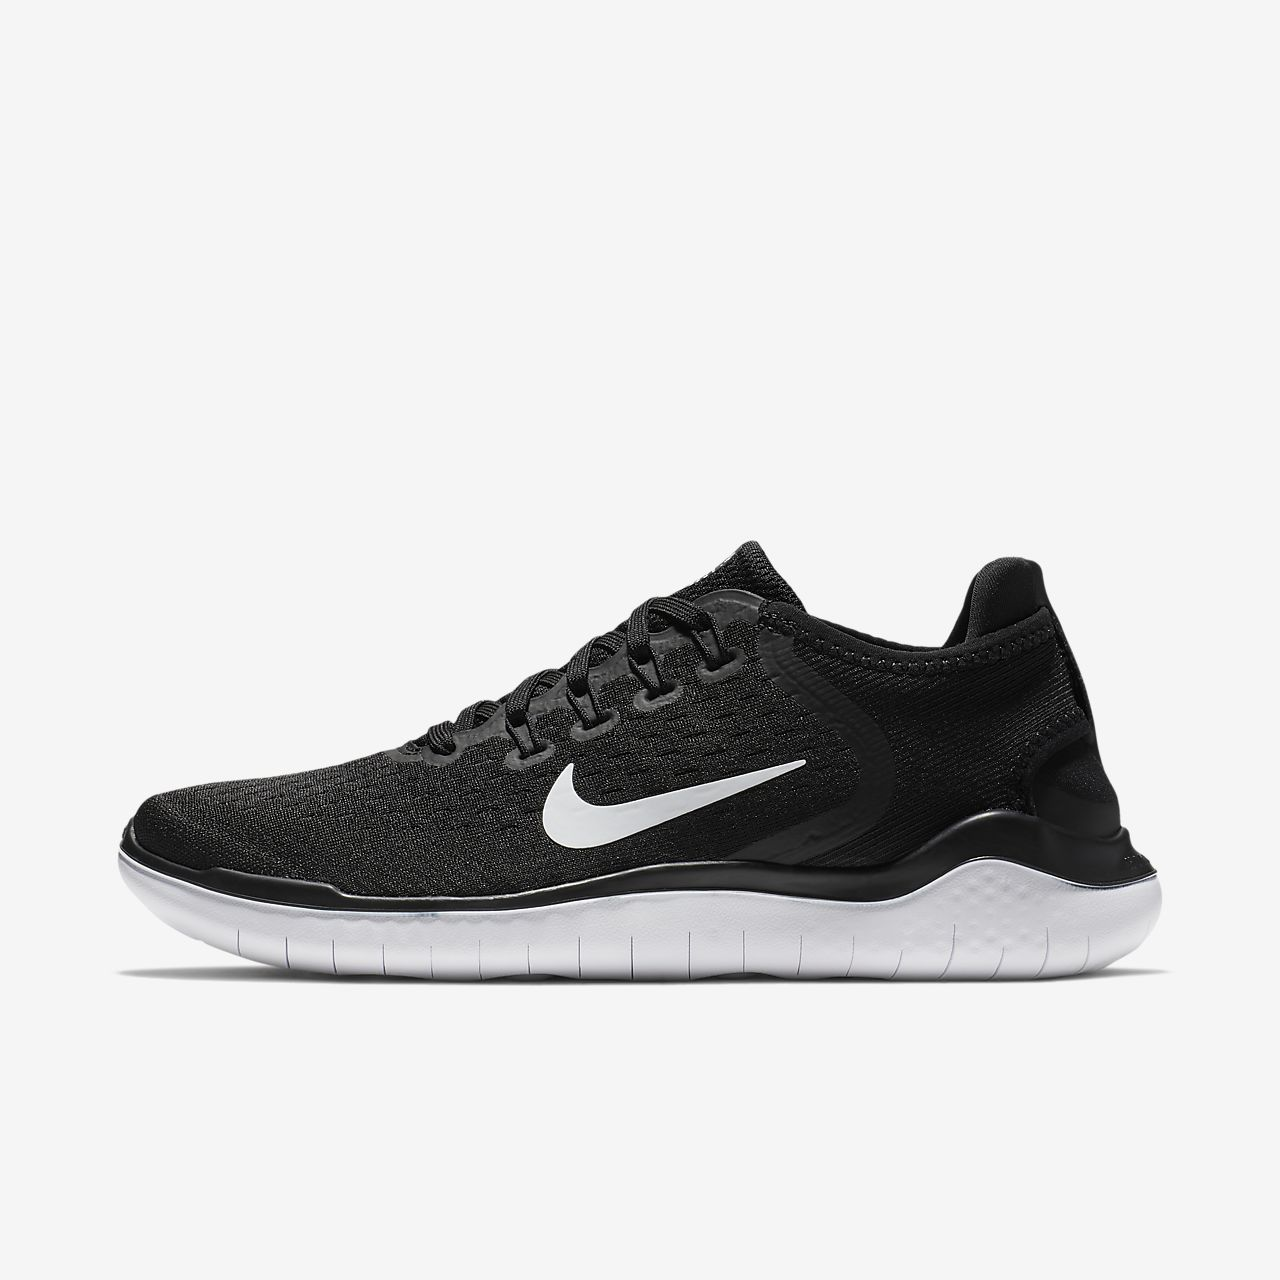 Rn De Running Free Chaussure Nike Pour 2018 Femme rsdtQxCBh